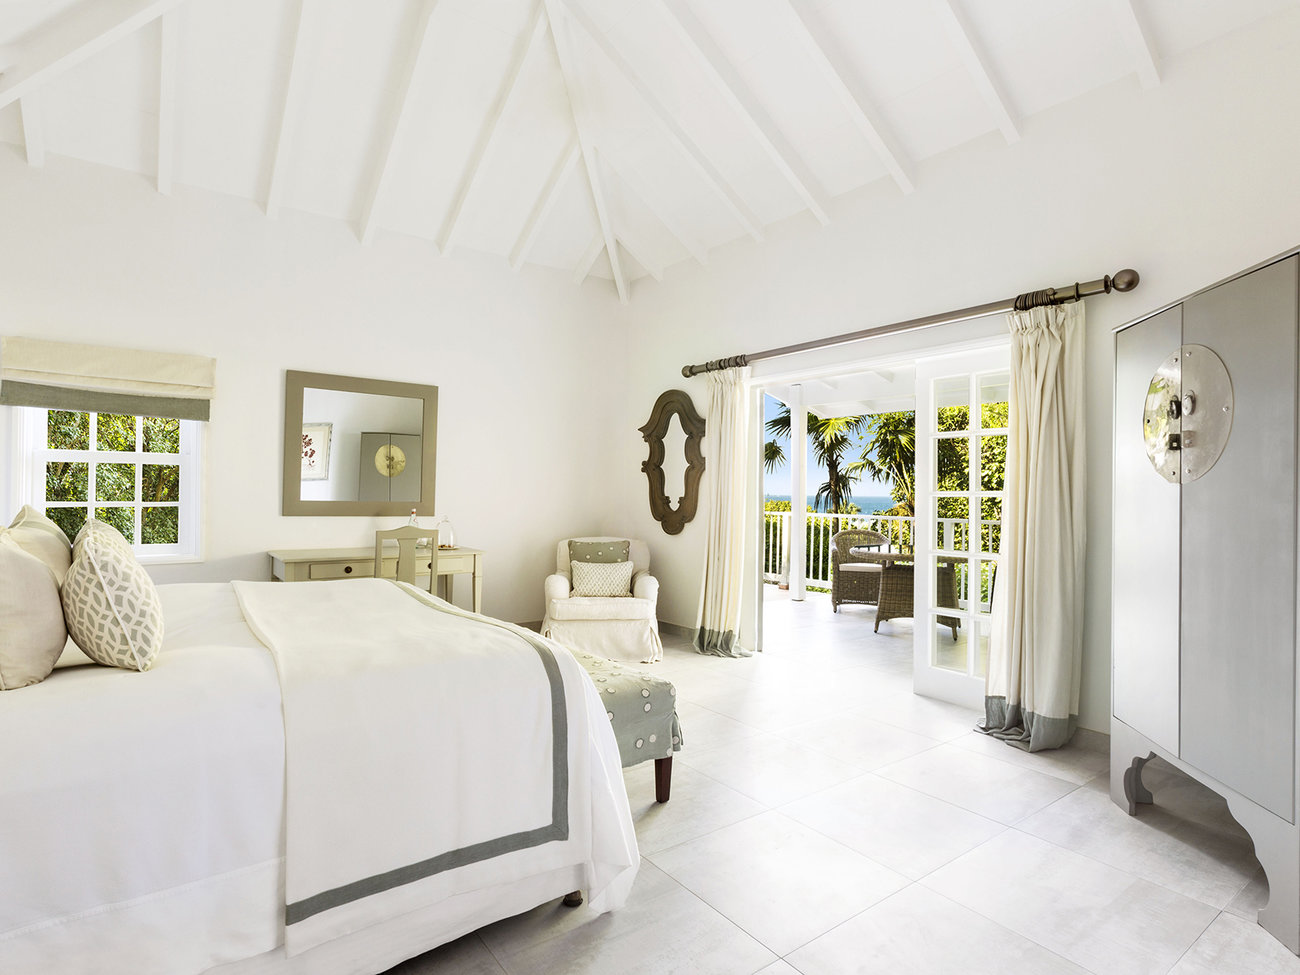 Cheval Blanc Isle de France Hotel in St. Barts